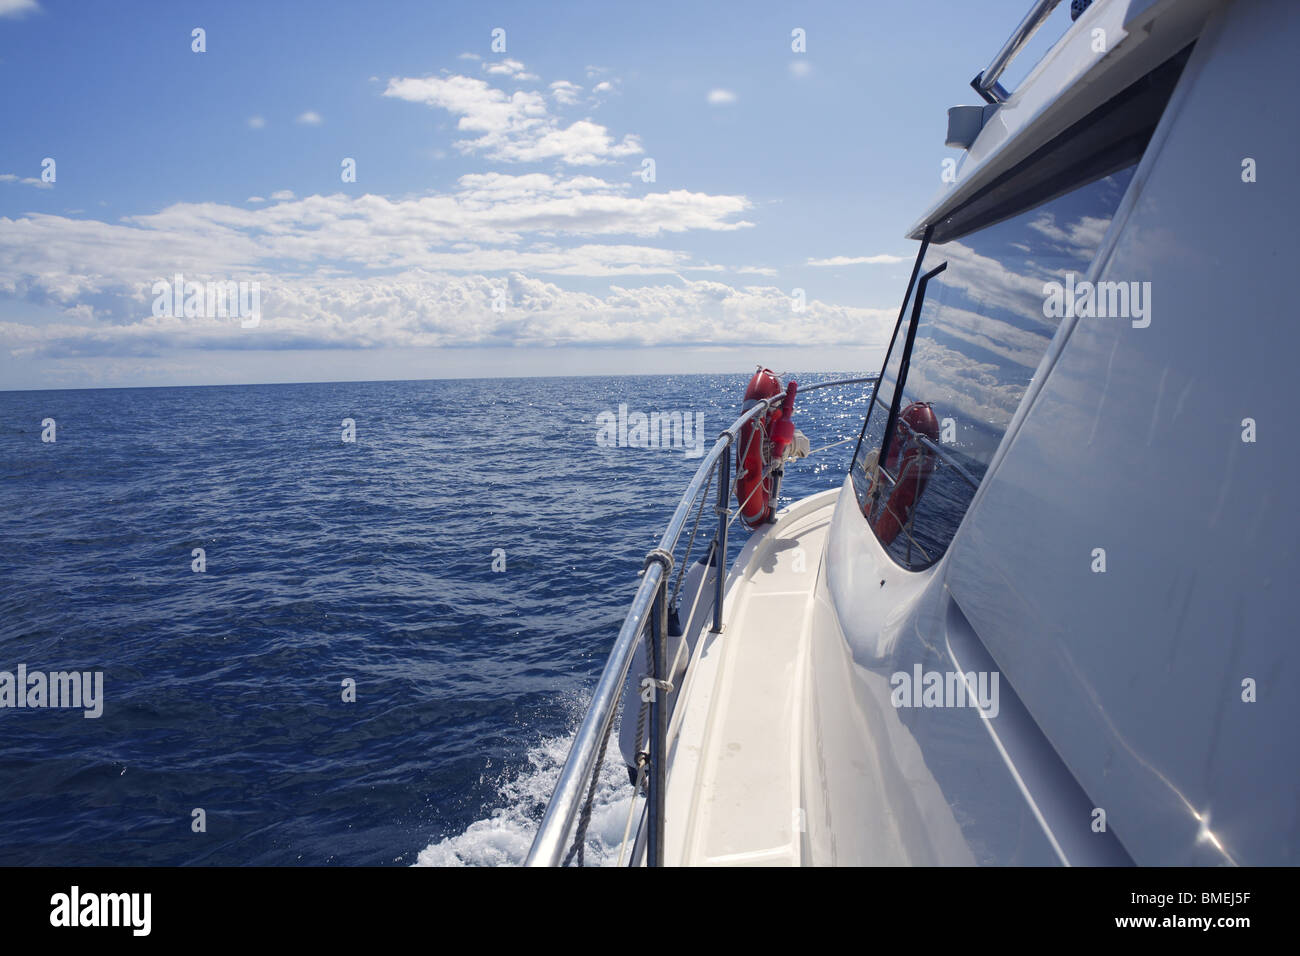 motorboat side view with ocean sea reflection on window glass - Stock Image